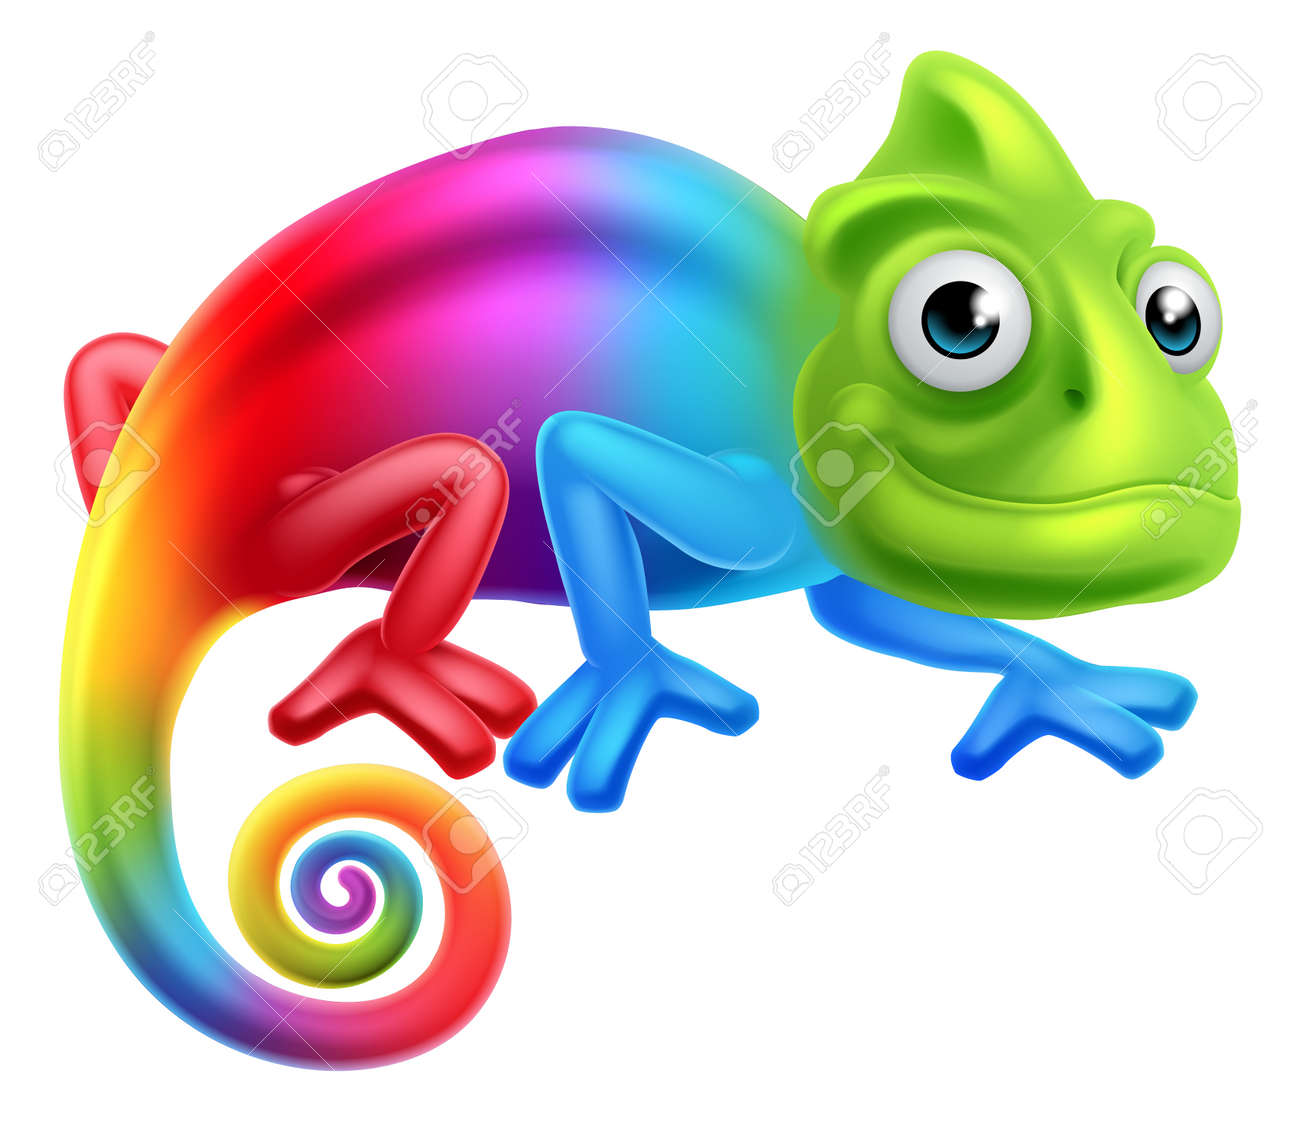 a cute cartoon rainbow coloured multicoloured chameleon lizard rh 123rf com veiled chameleon clipart the mixed up chameleon clipart